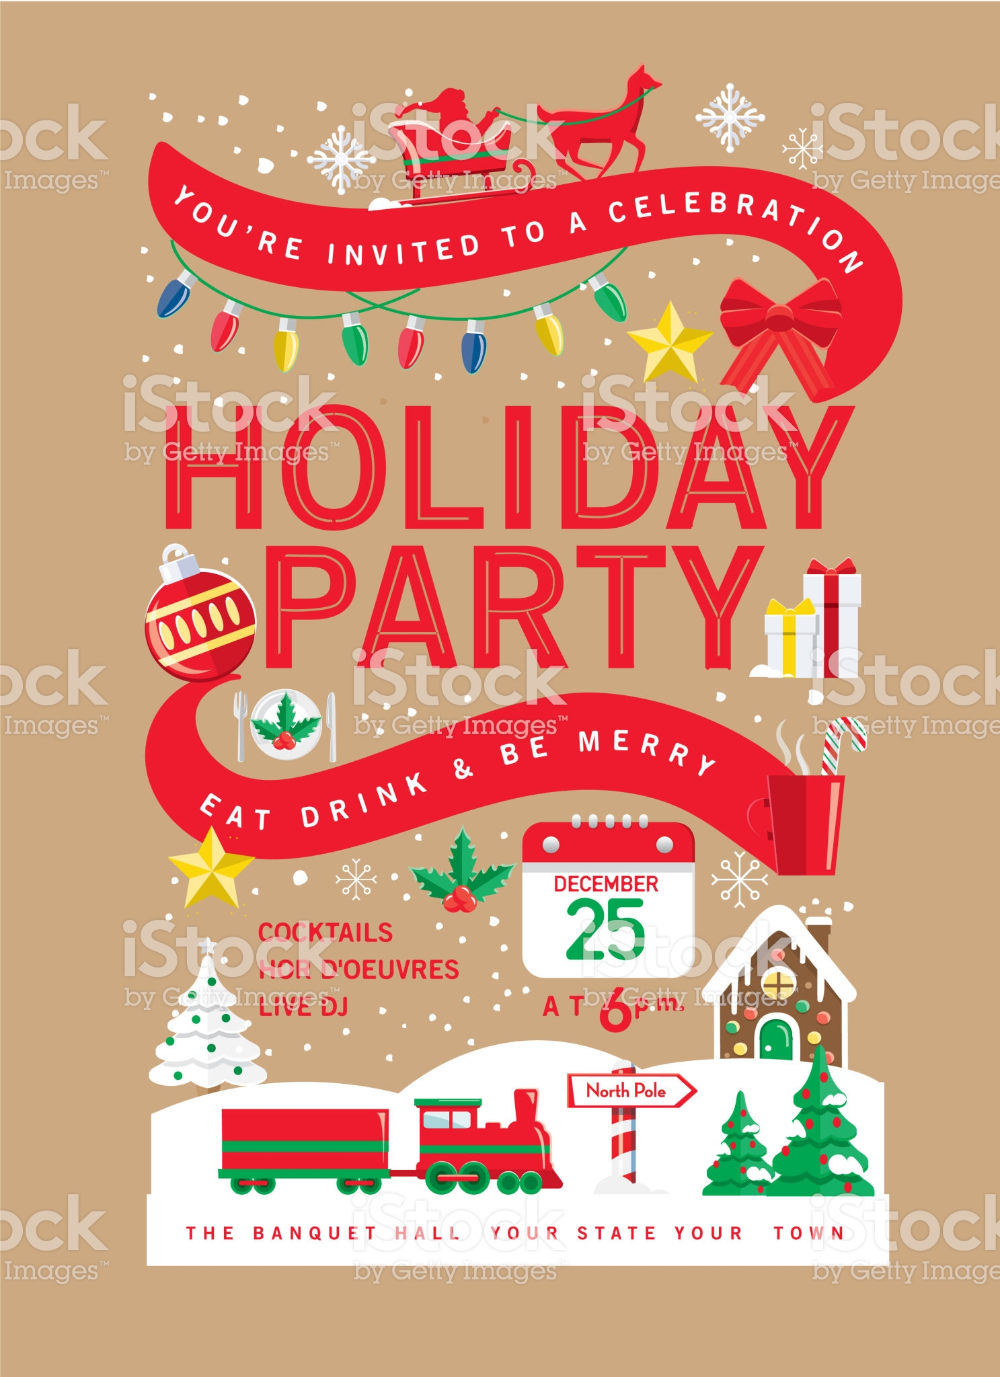 Vector Illustration Of A Colorful Holiday Christmas Party Invitation Party Invite Design Invitation Design Template Christmas Party Invitations